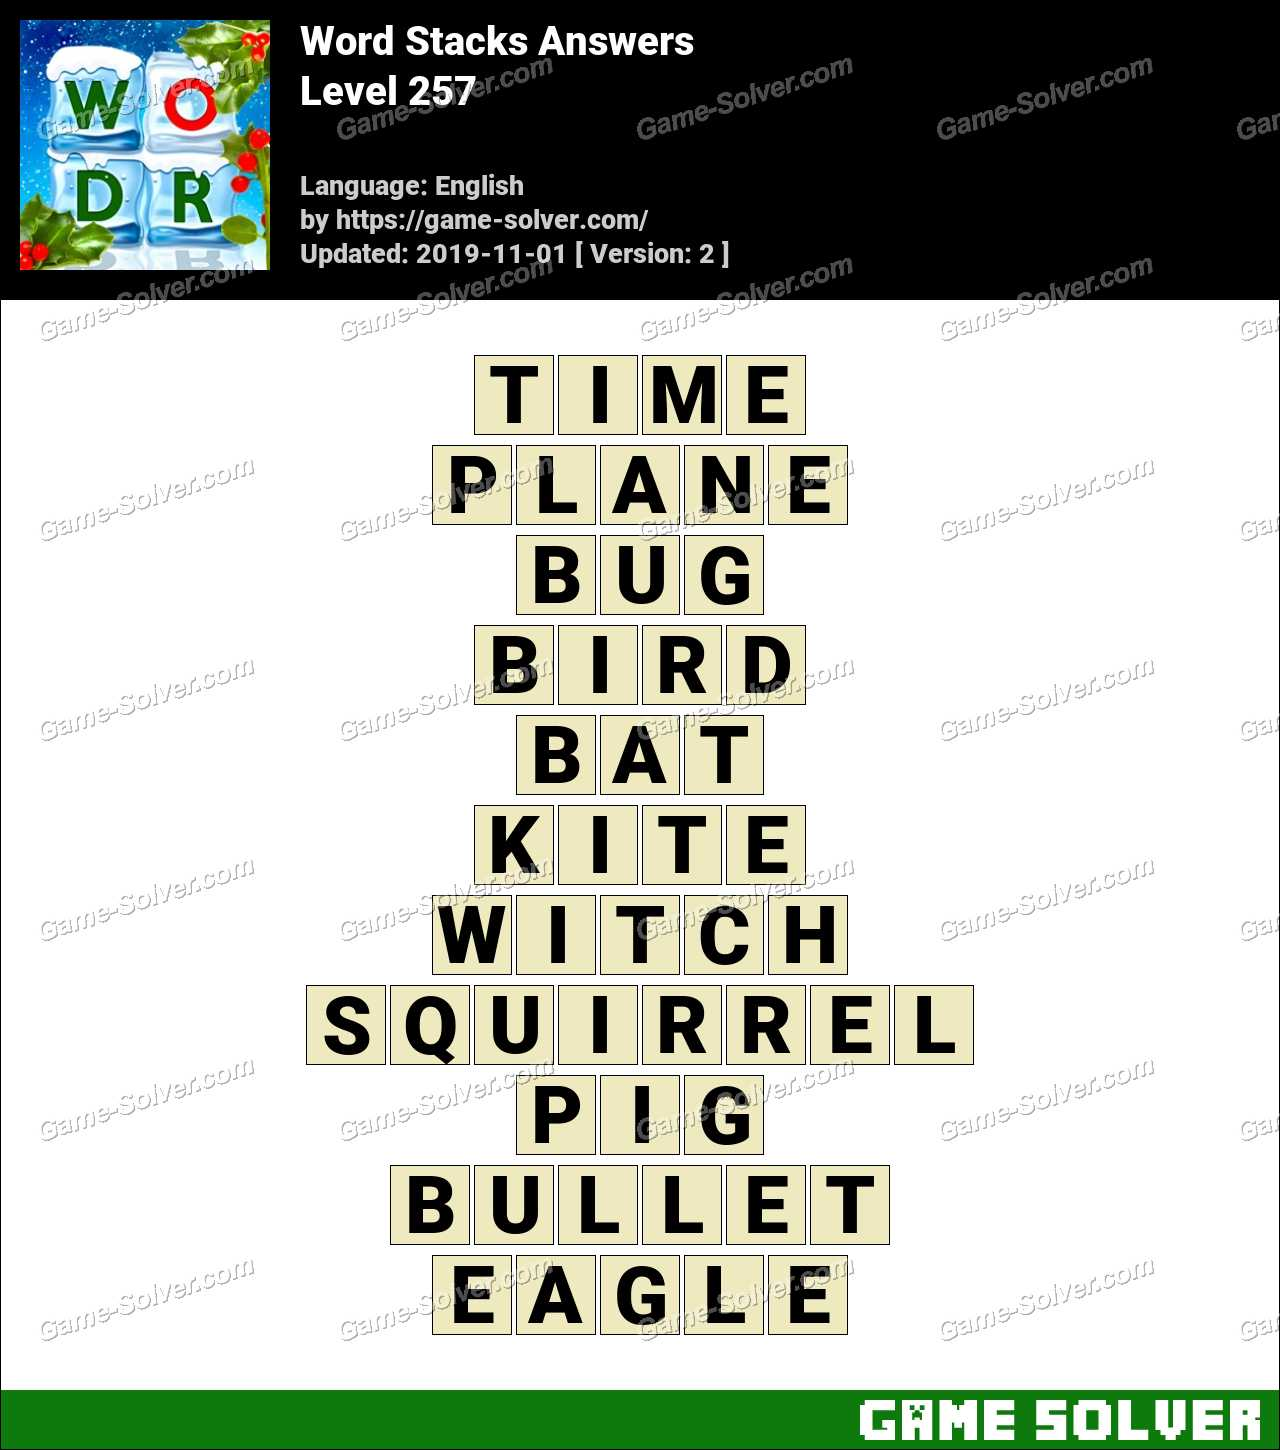 Word Stacks Level 257 Answers